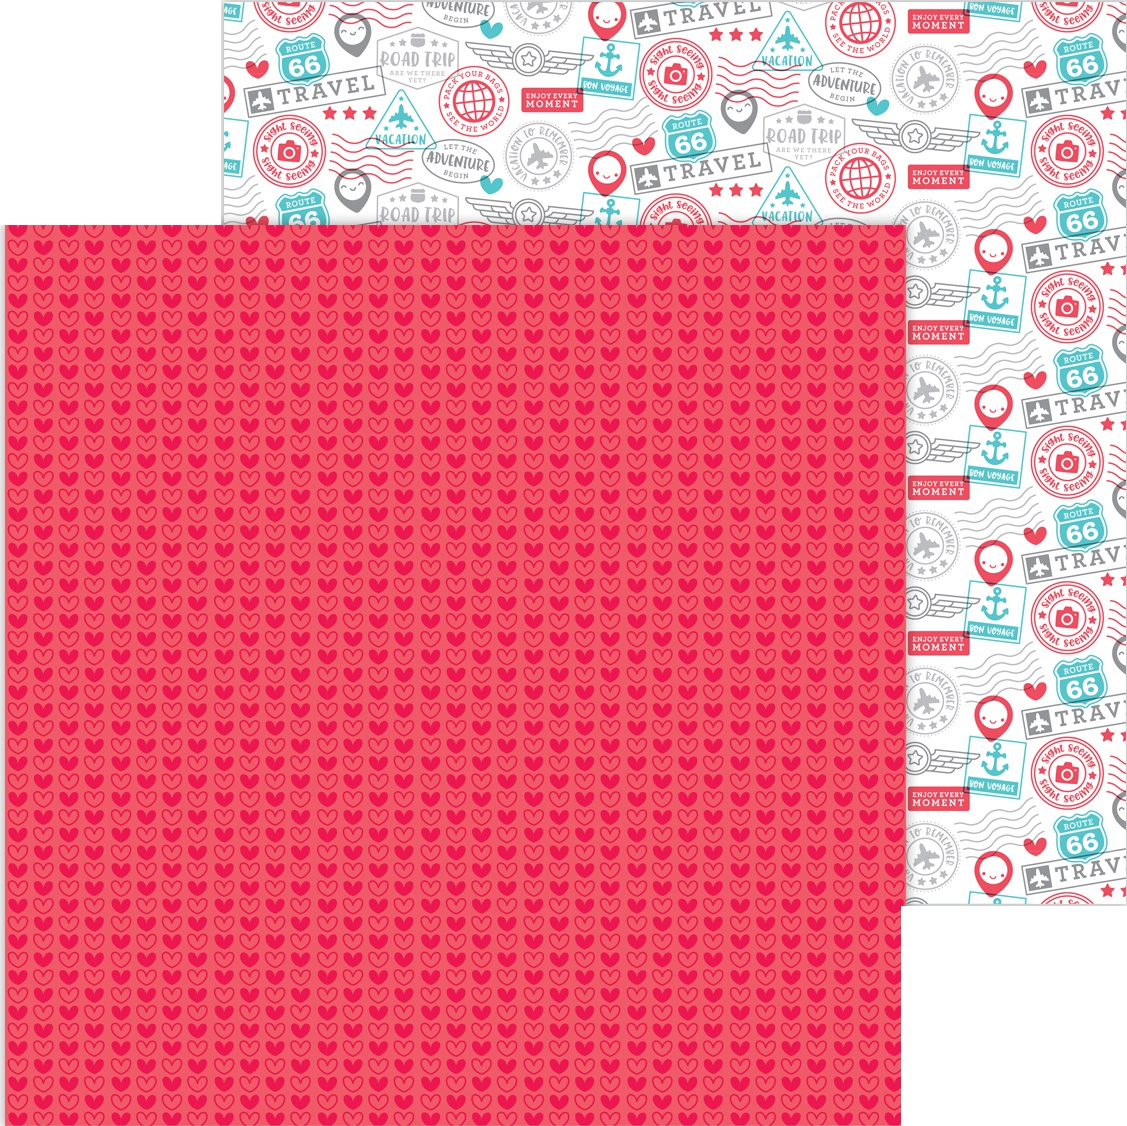 Doodlebug I Heart Travel - Love This - 12x12 Double-Sided Paper